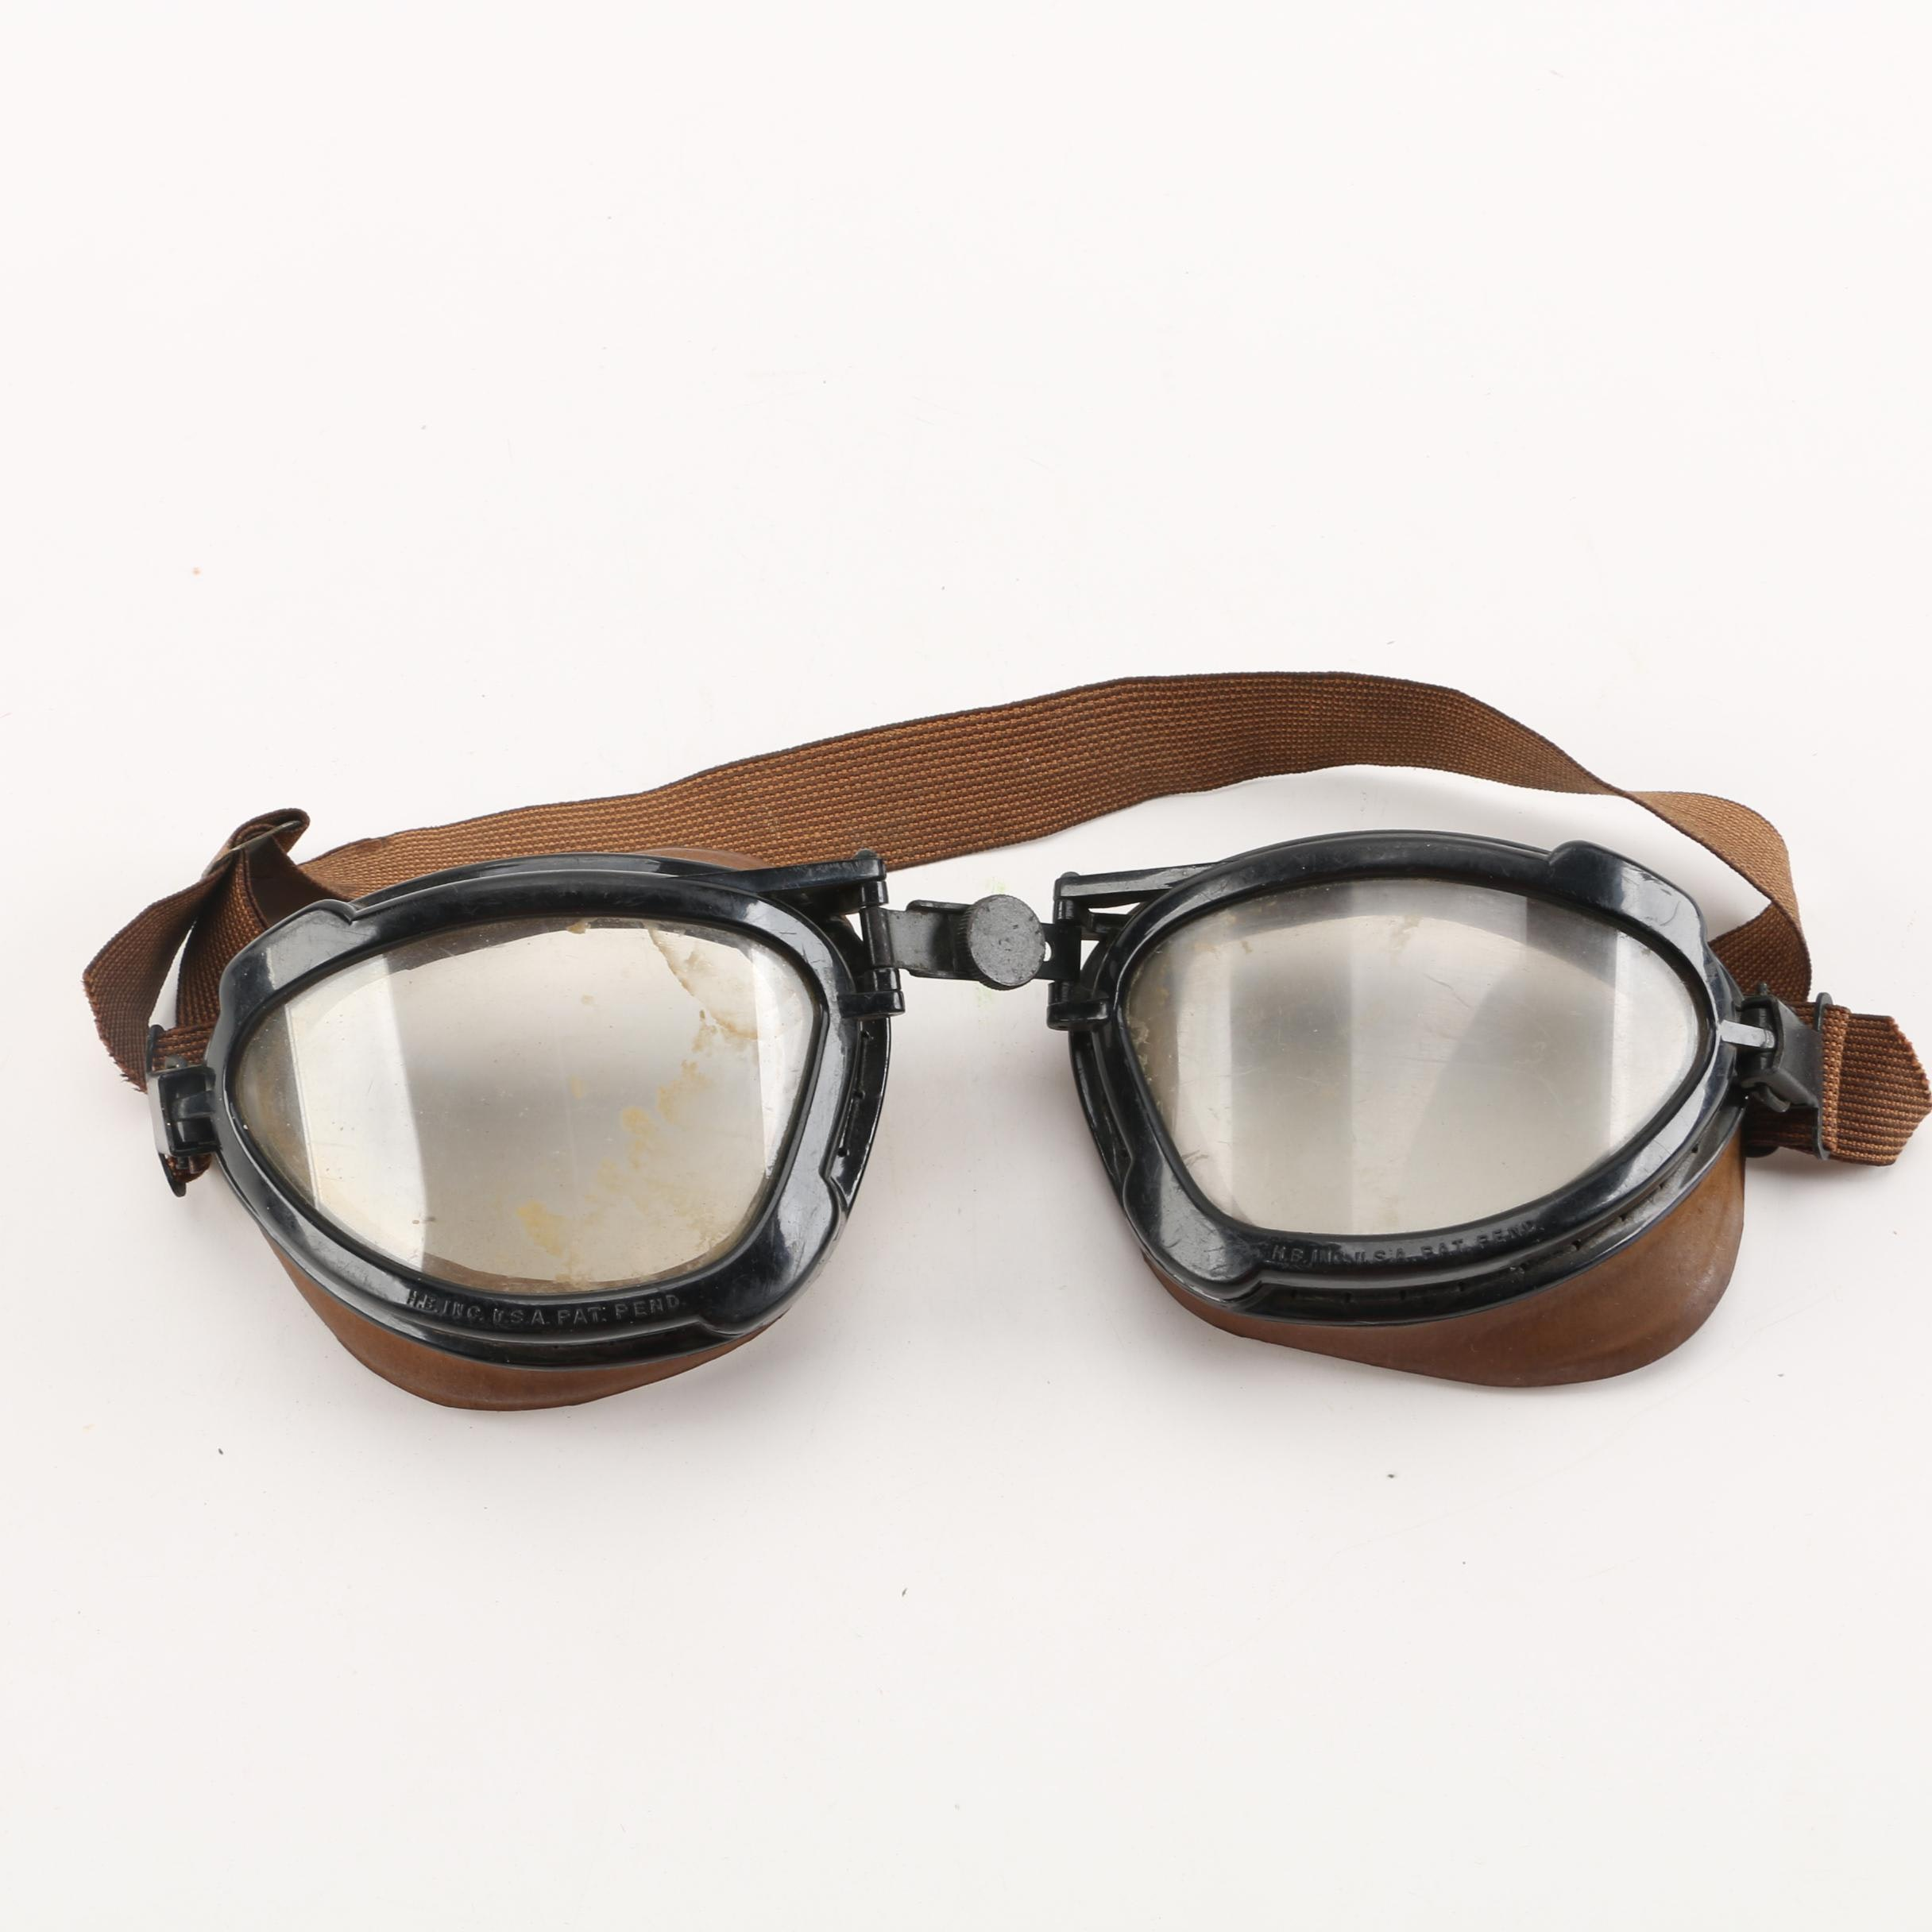 WWII Era H.B. Inc. U.S. Military Aviator Flight Goggles